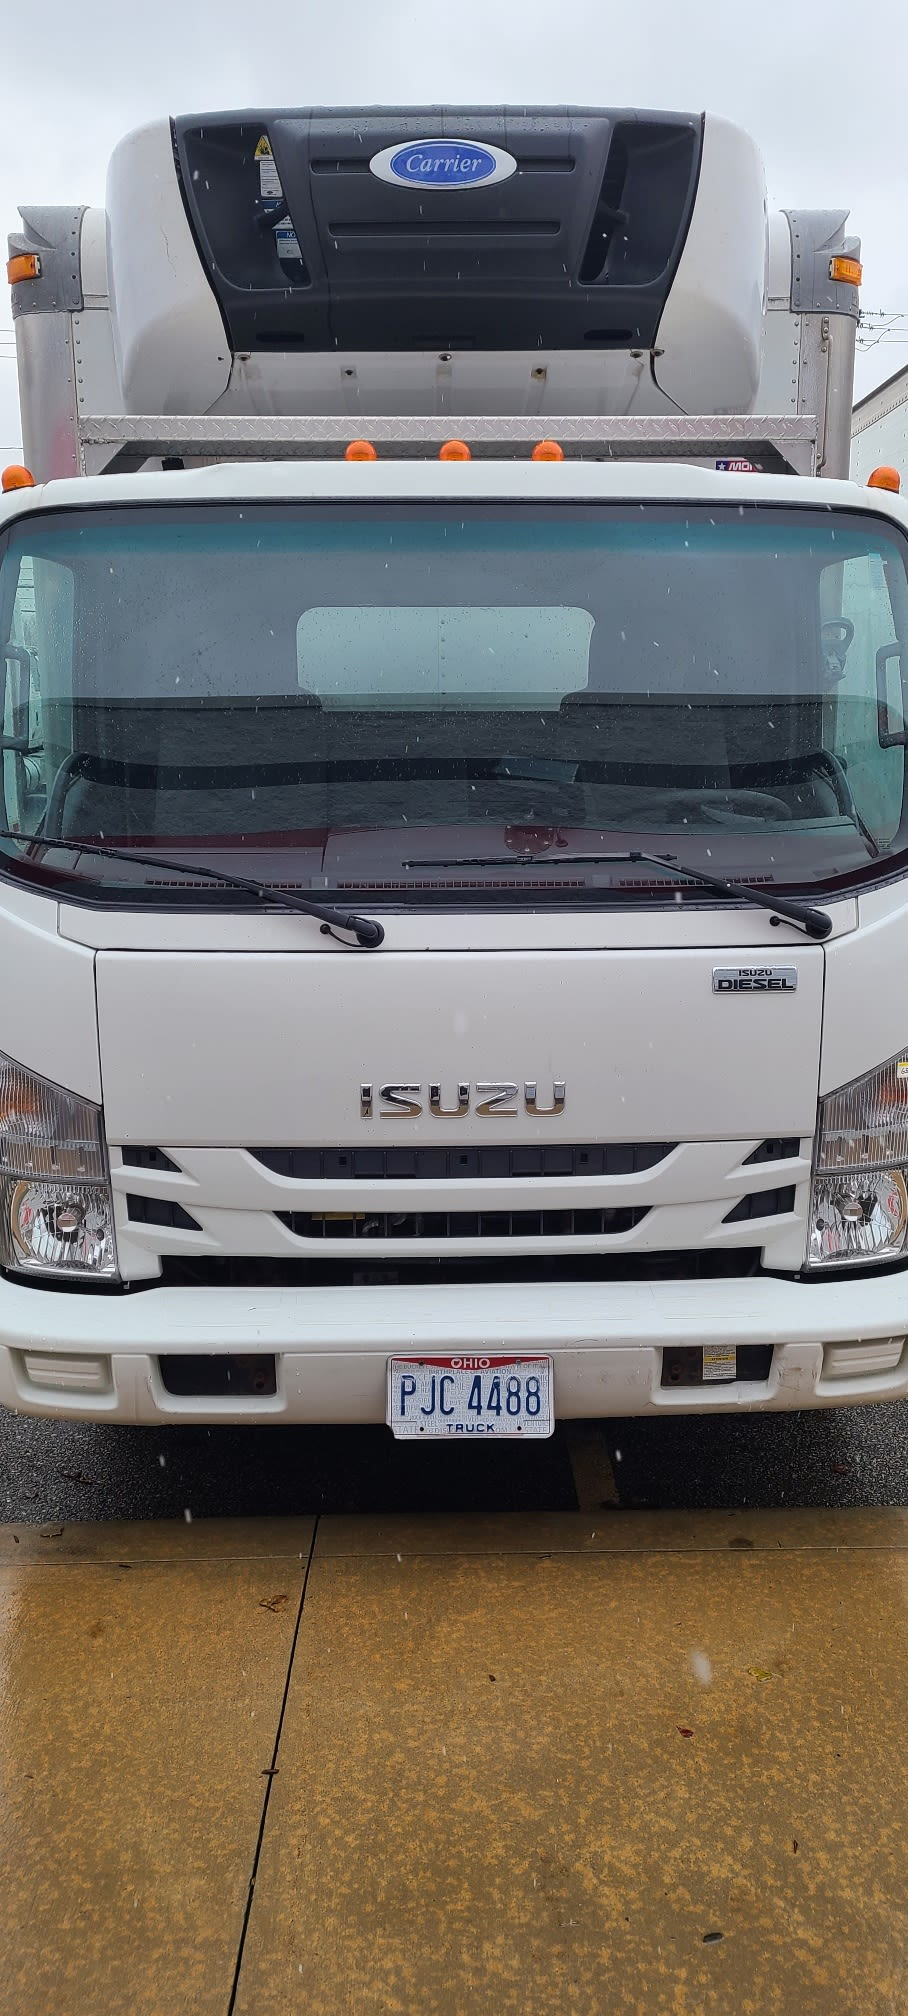 2016 Isuzu NRR Regular Cab 4x2, Refrigerated Body #656760 - photo 1